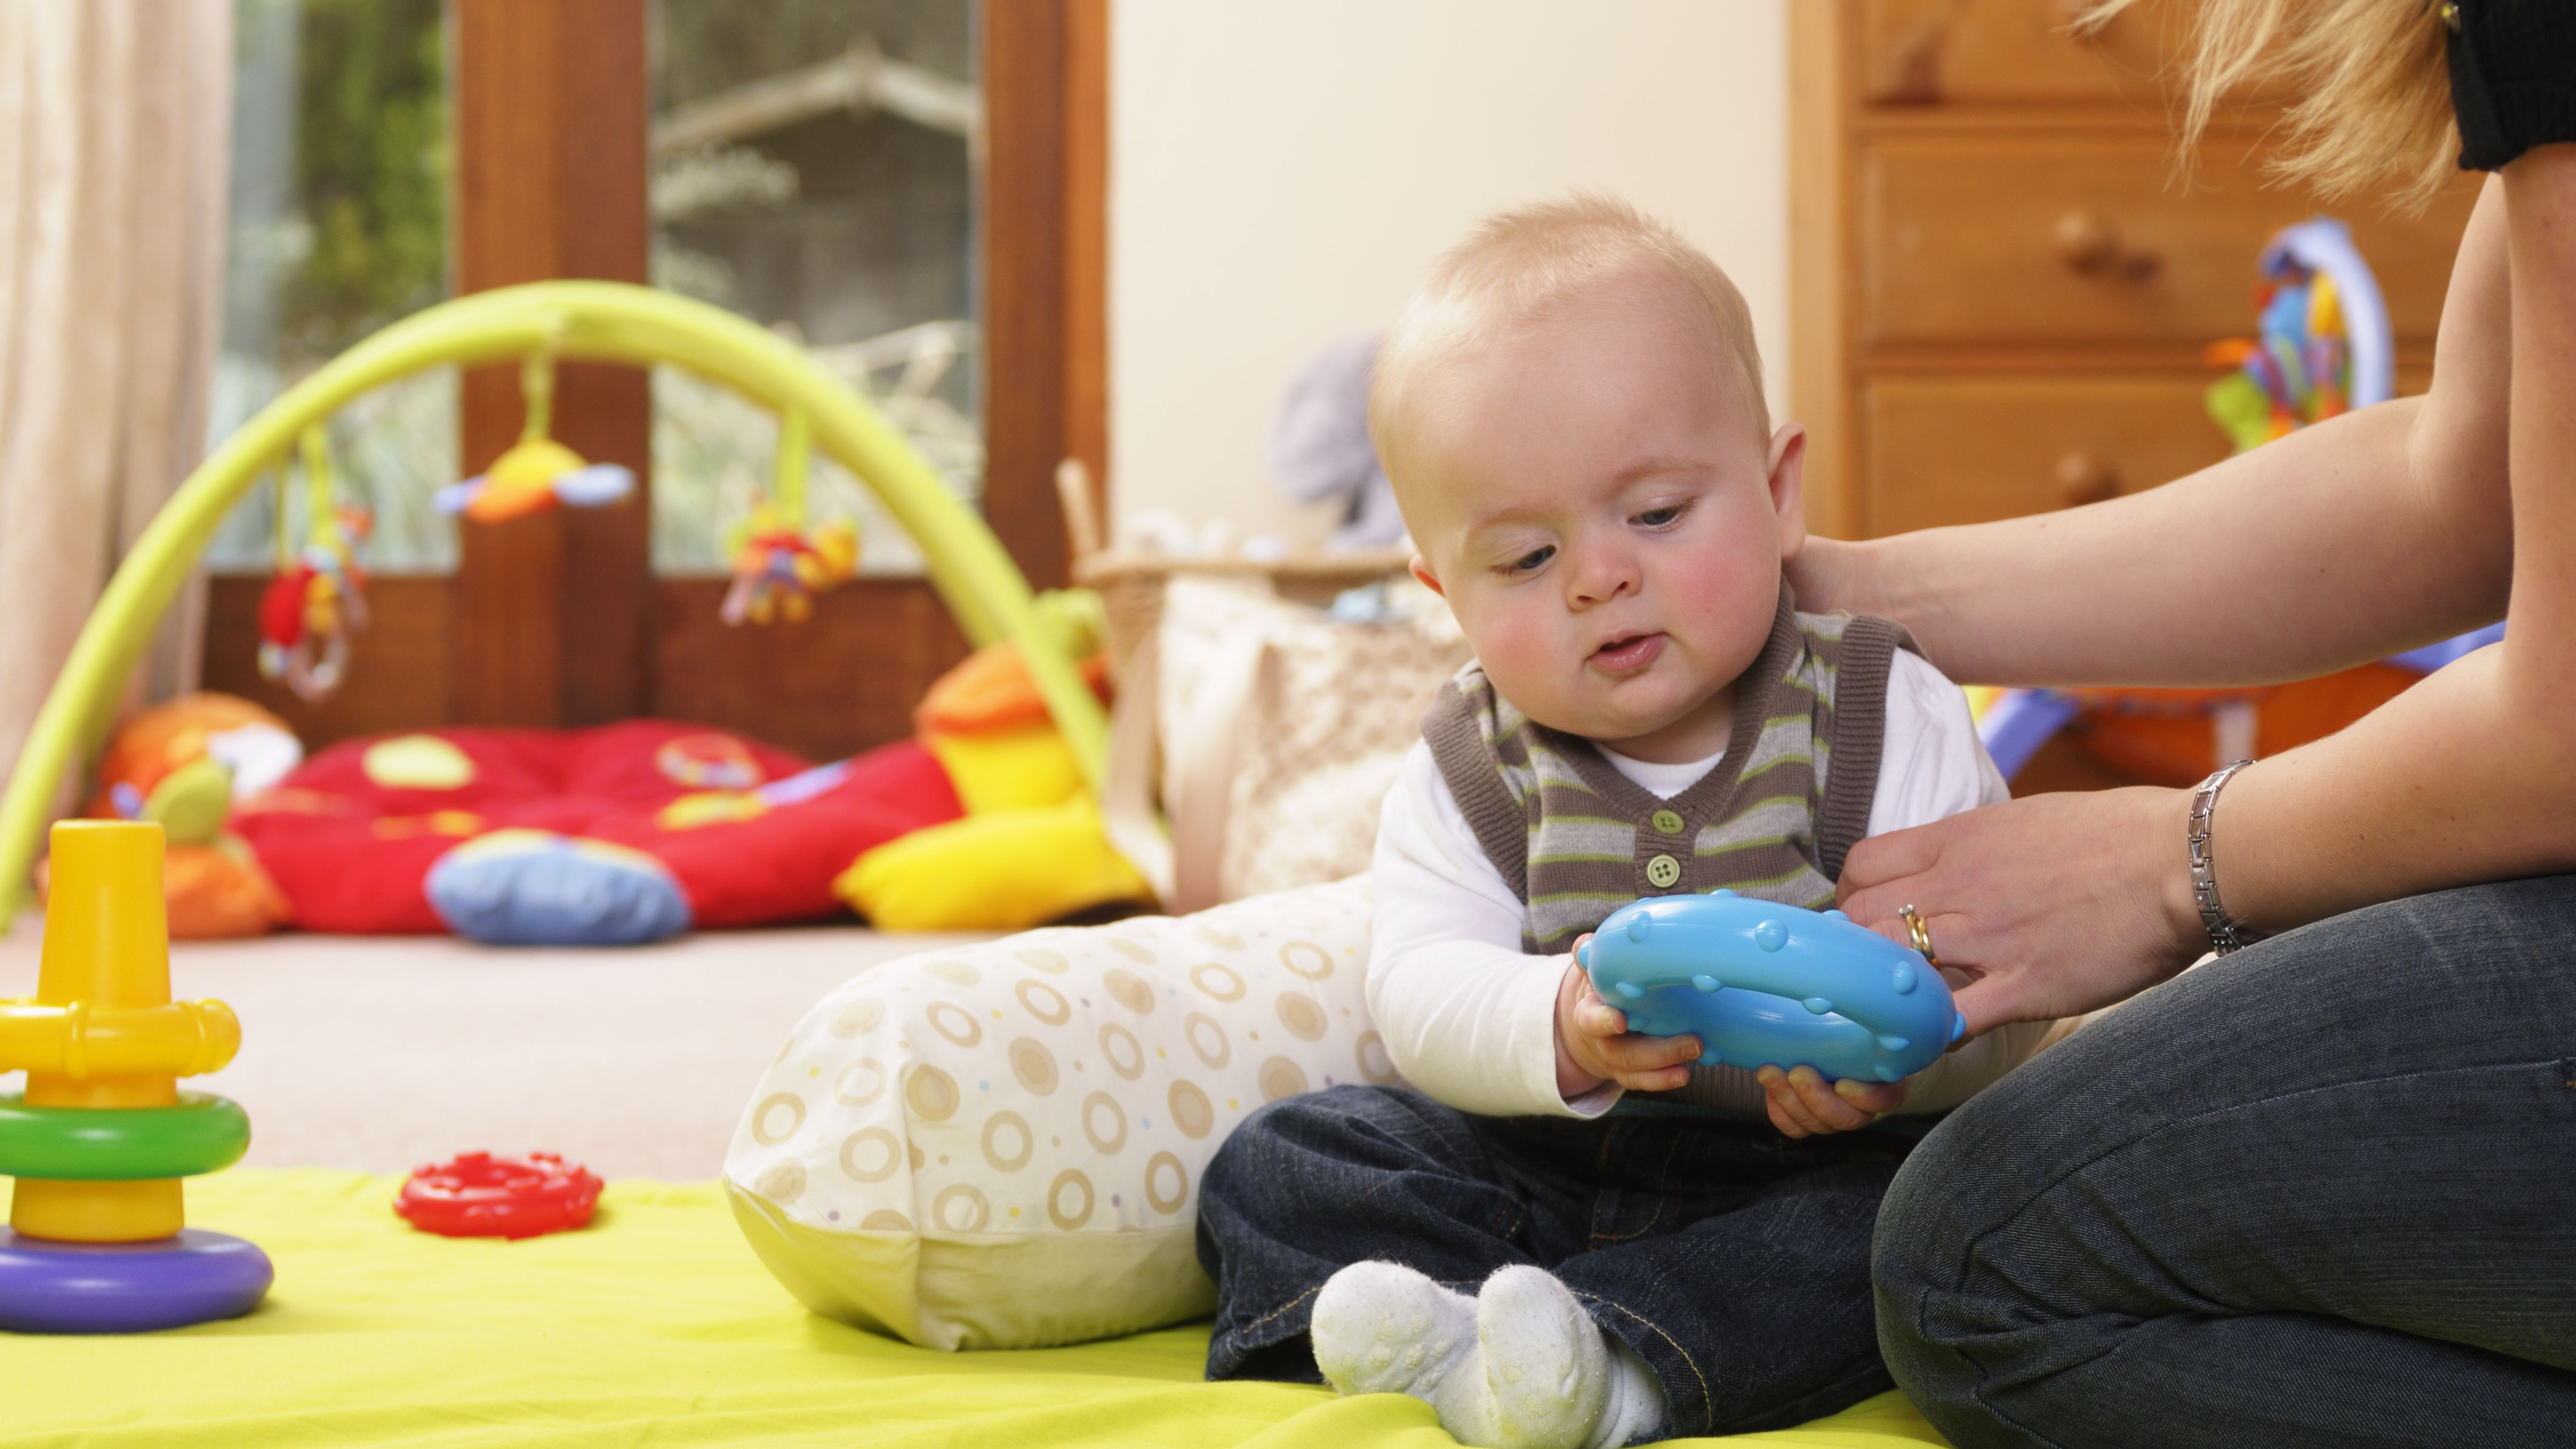 a9ec668c863 The 8 Best Toys for 4-Month-Olds of 2019